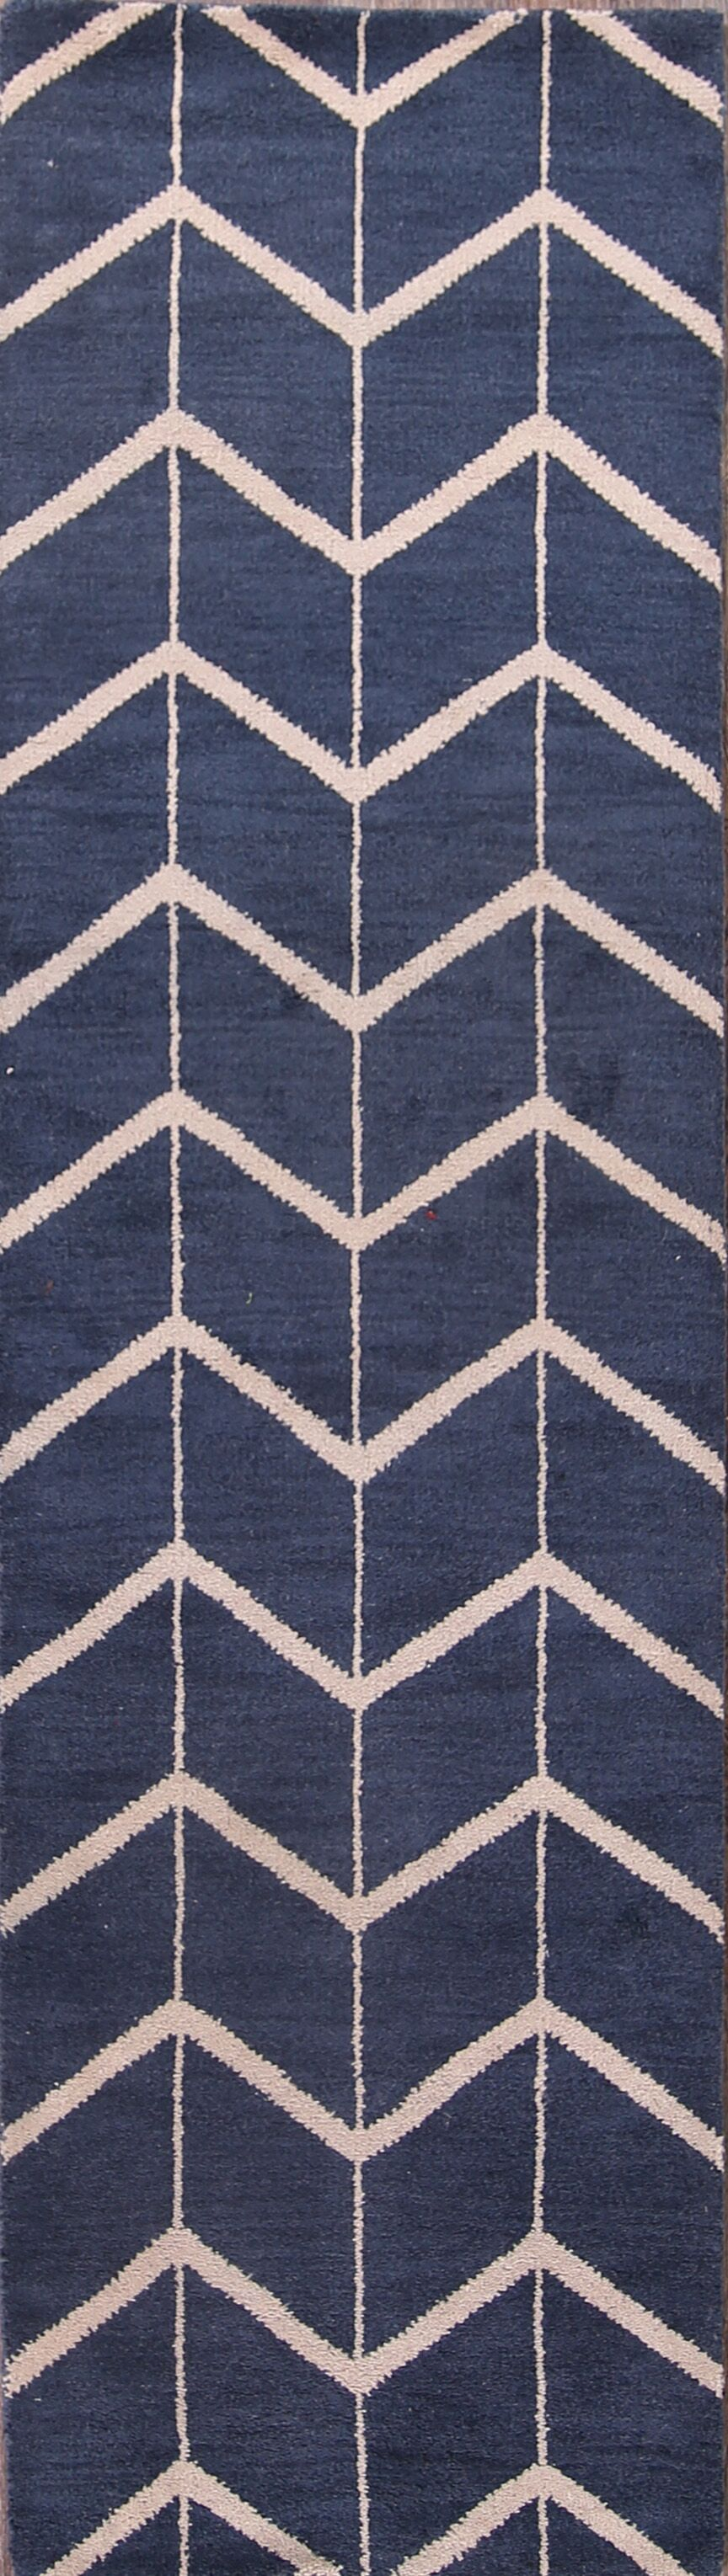 One-of-a-Kind Xanthe Traditional Modern Moroccan Trellis Hudson Oriental Hand-Knotted Wool Beige/Blue Area Rug Rug Size: Runner 2'6